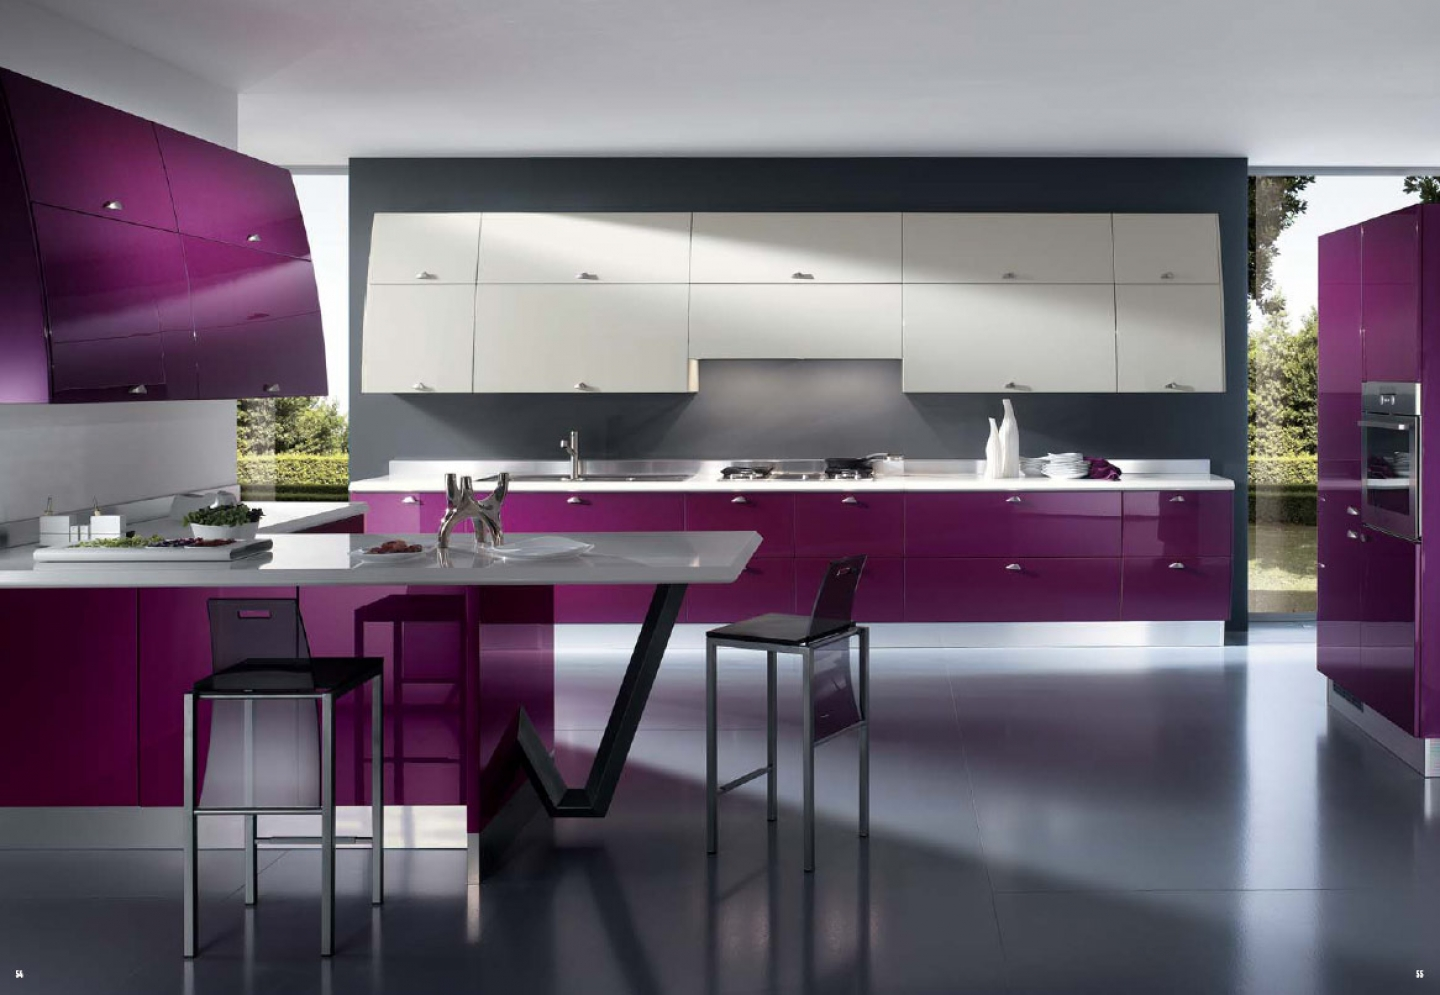 interiordesignforhouses com kitchen kitchen cabinet 1440x995